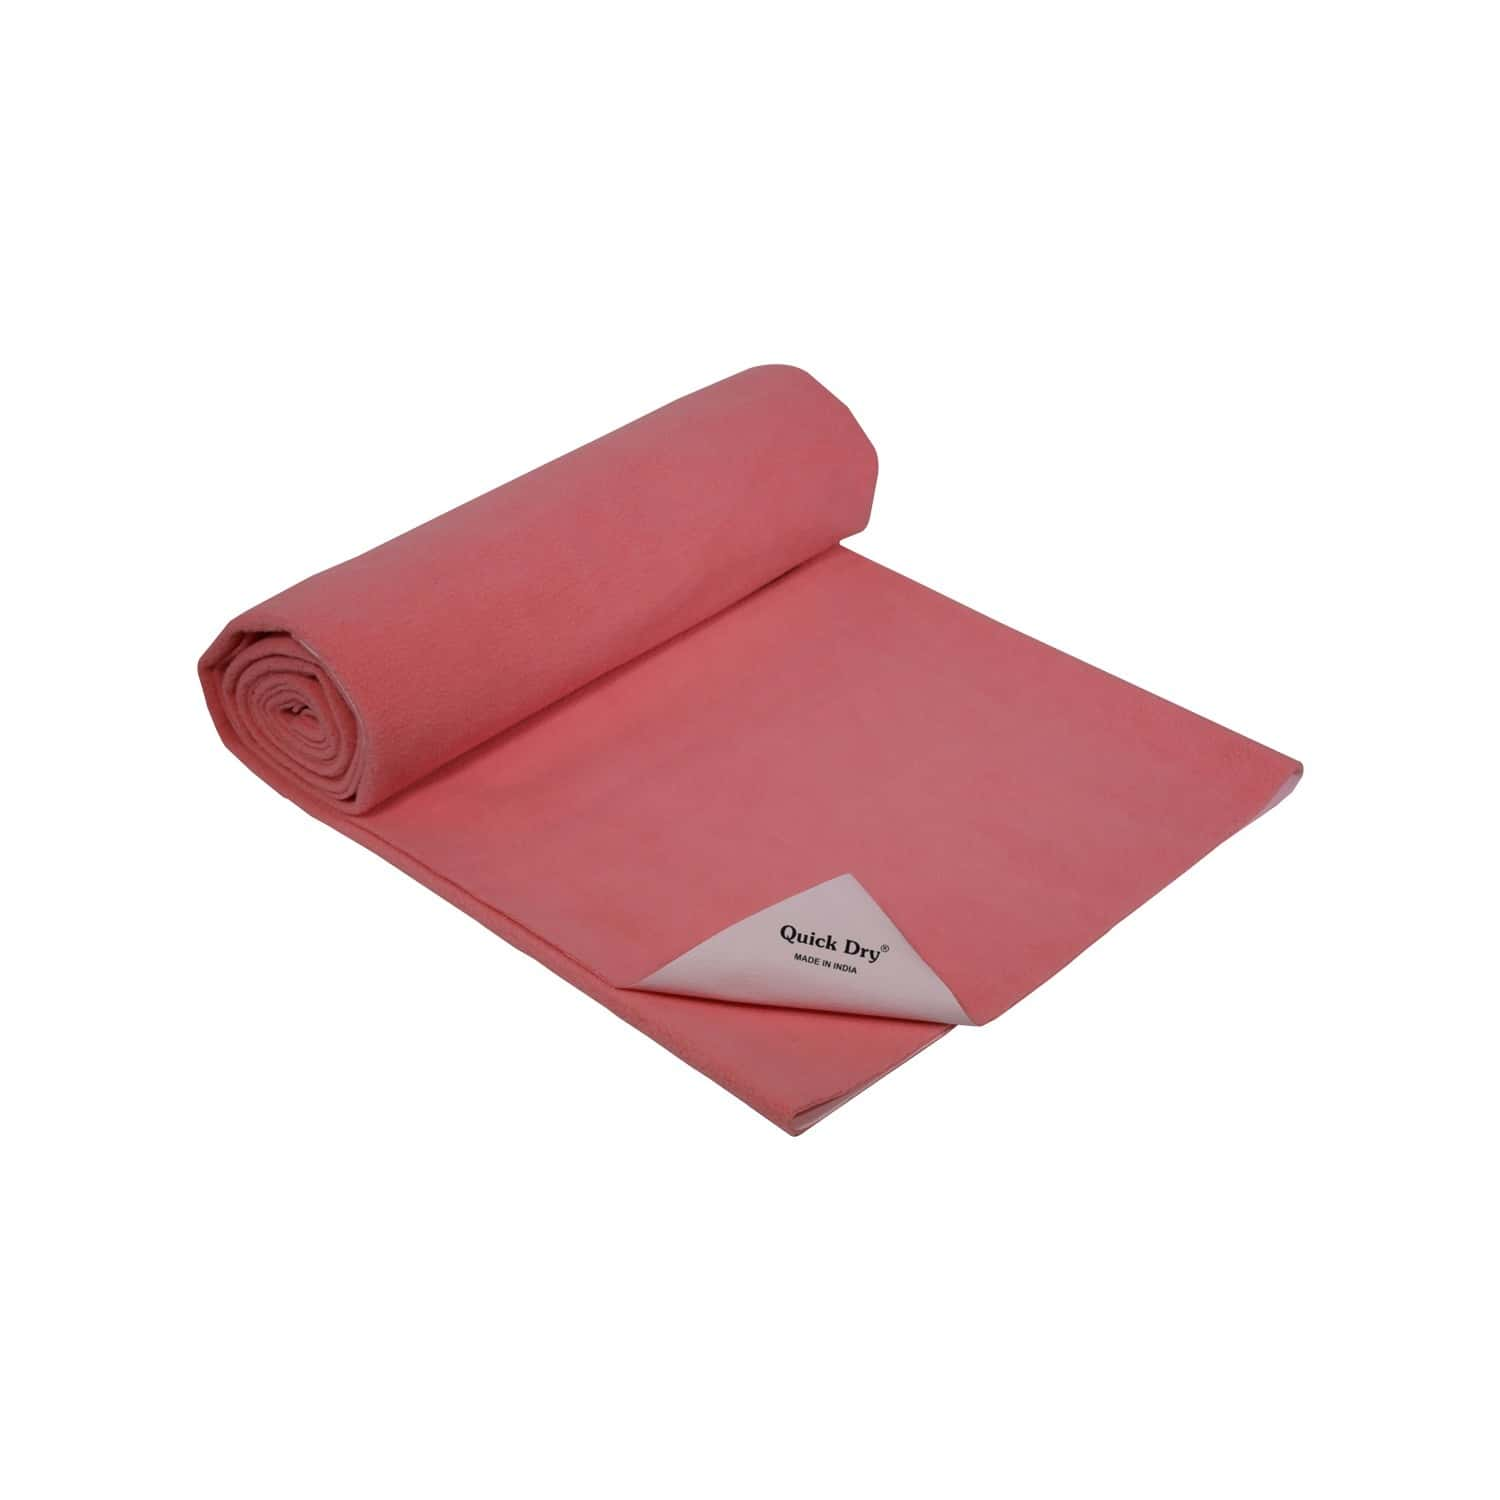 Quick Dry Baby Bed Protector - Plain Rose- Medium - 100 X 70 Cms